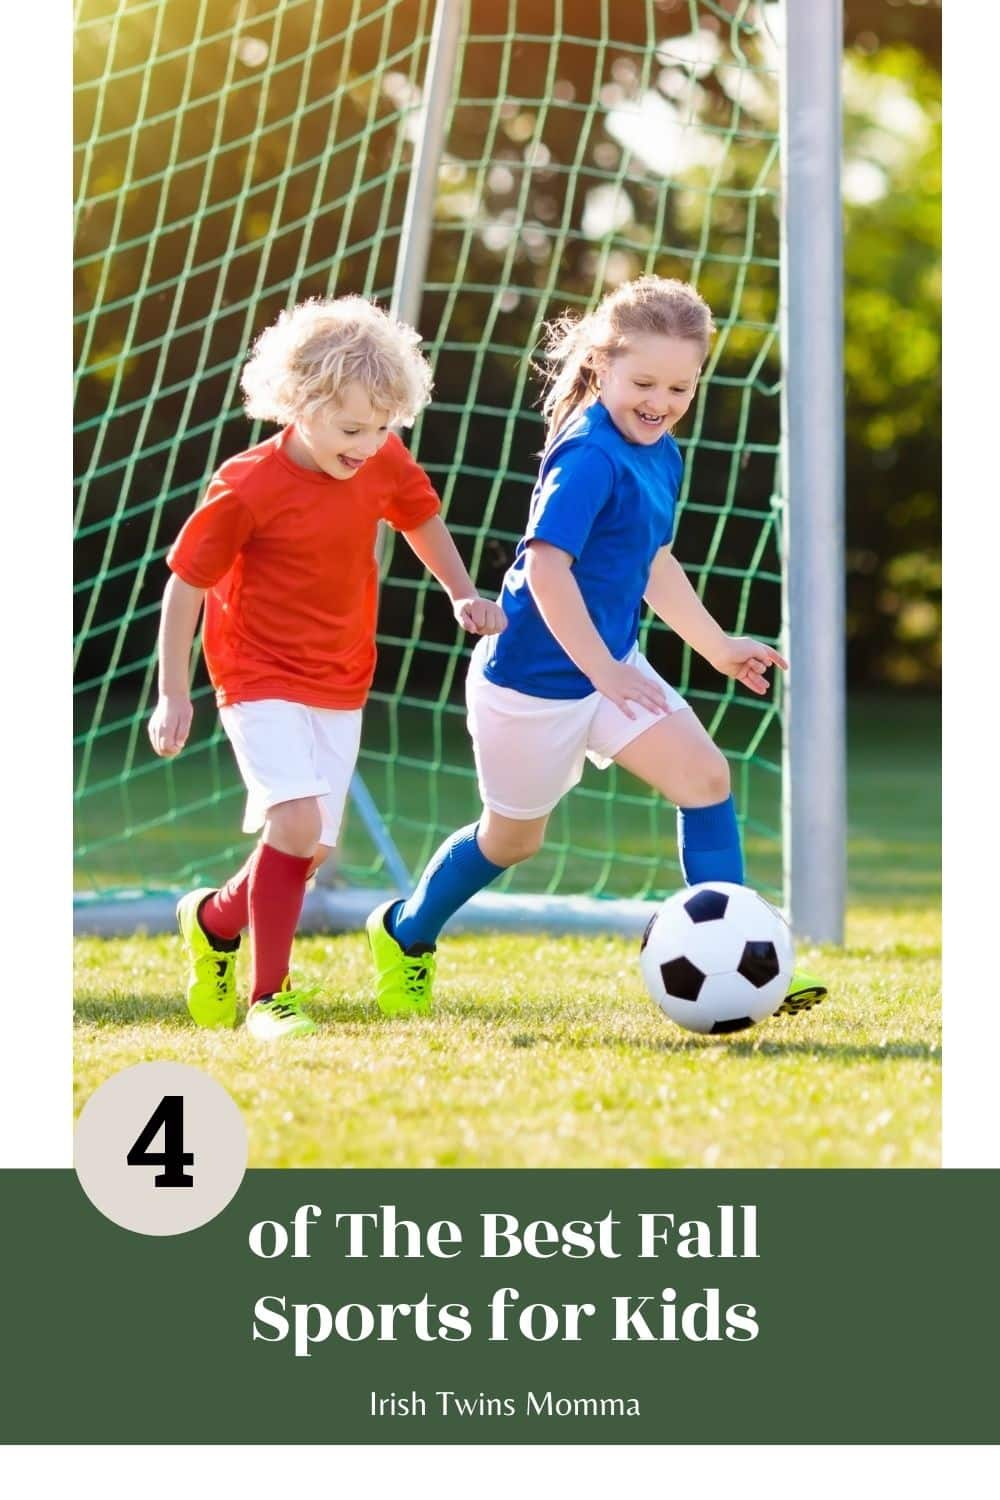 4 of The Best Fall Sports for Kids